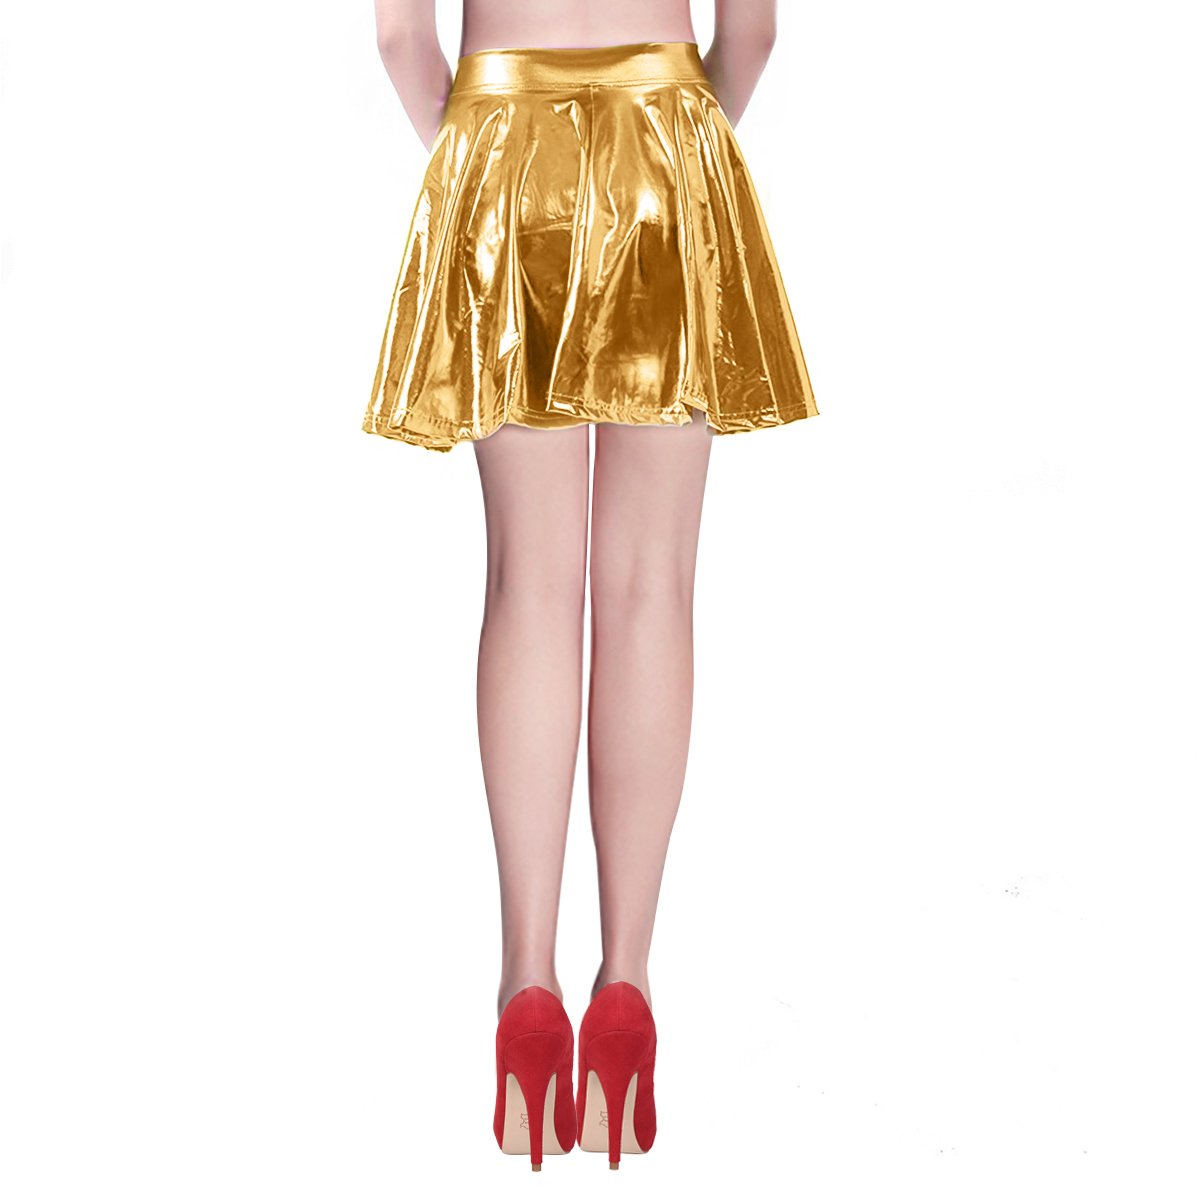 Mother's Day Gifts Pleated Skirt Short Shiny Liquid Metallic Flared Skater Skirt Golden, Small by TQS (Image #4)